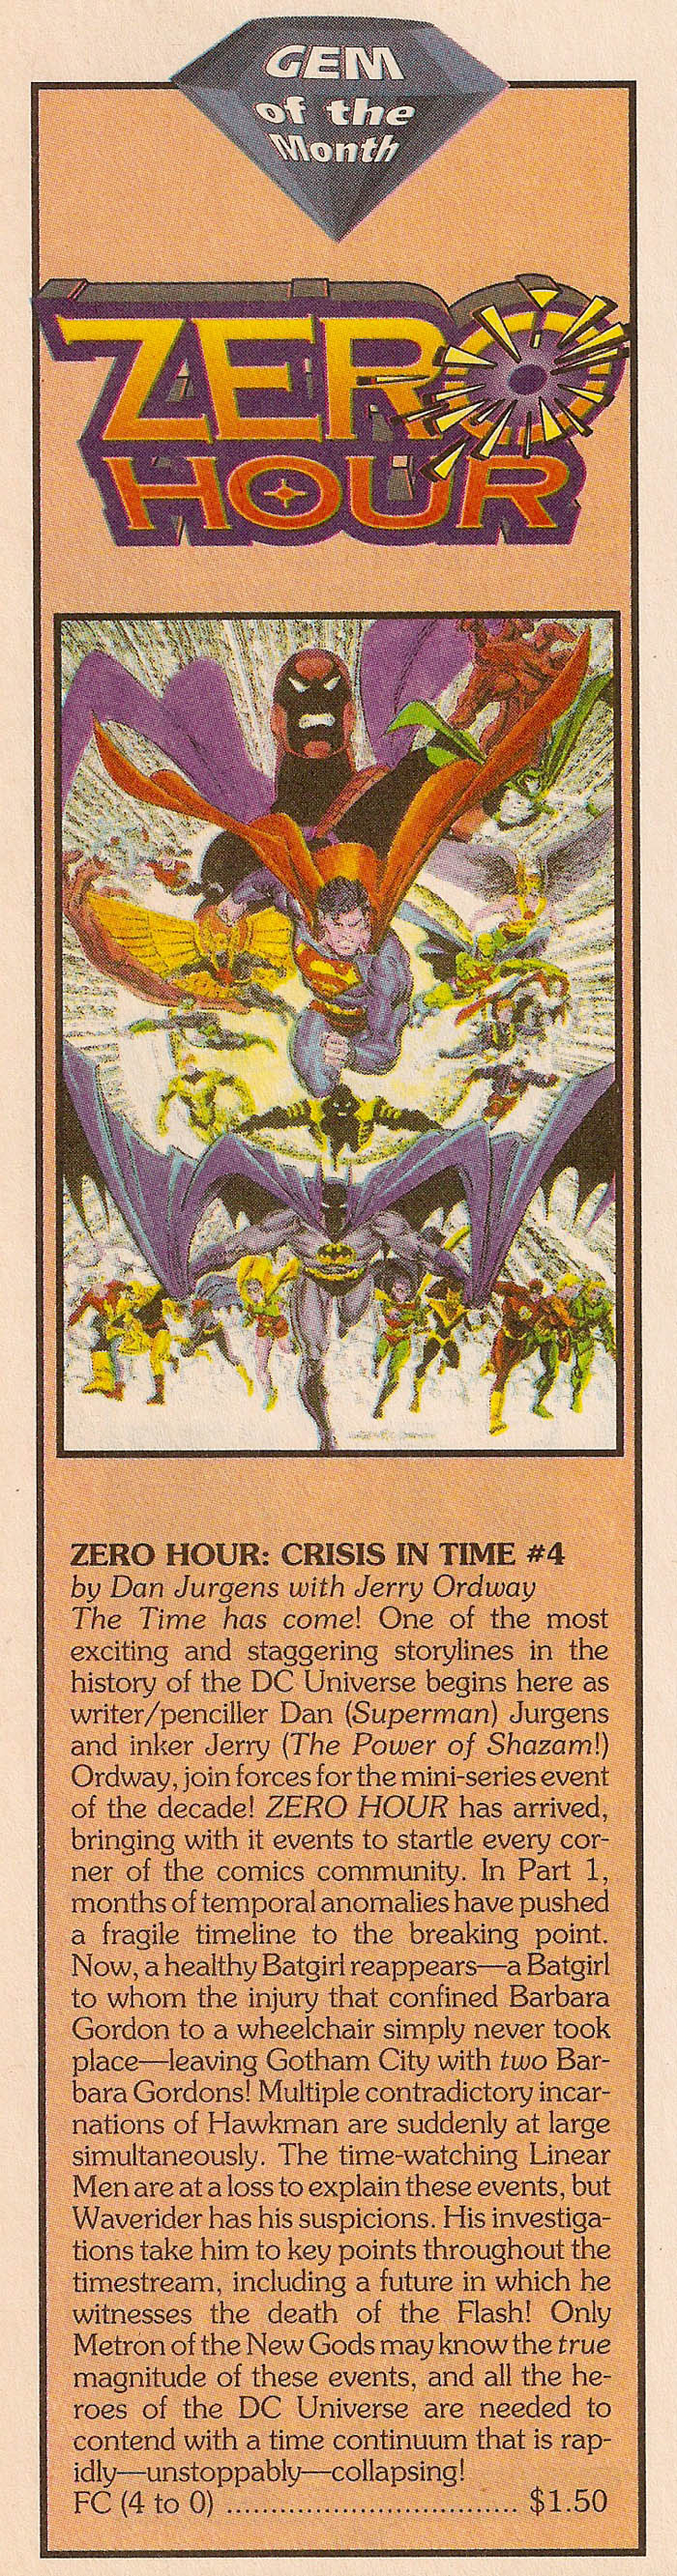 Solicitation 1- Zero Hour #4